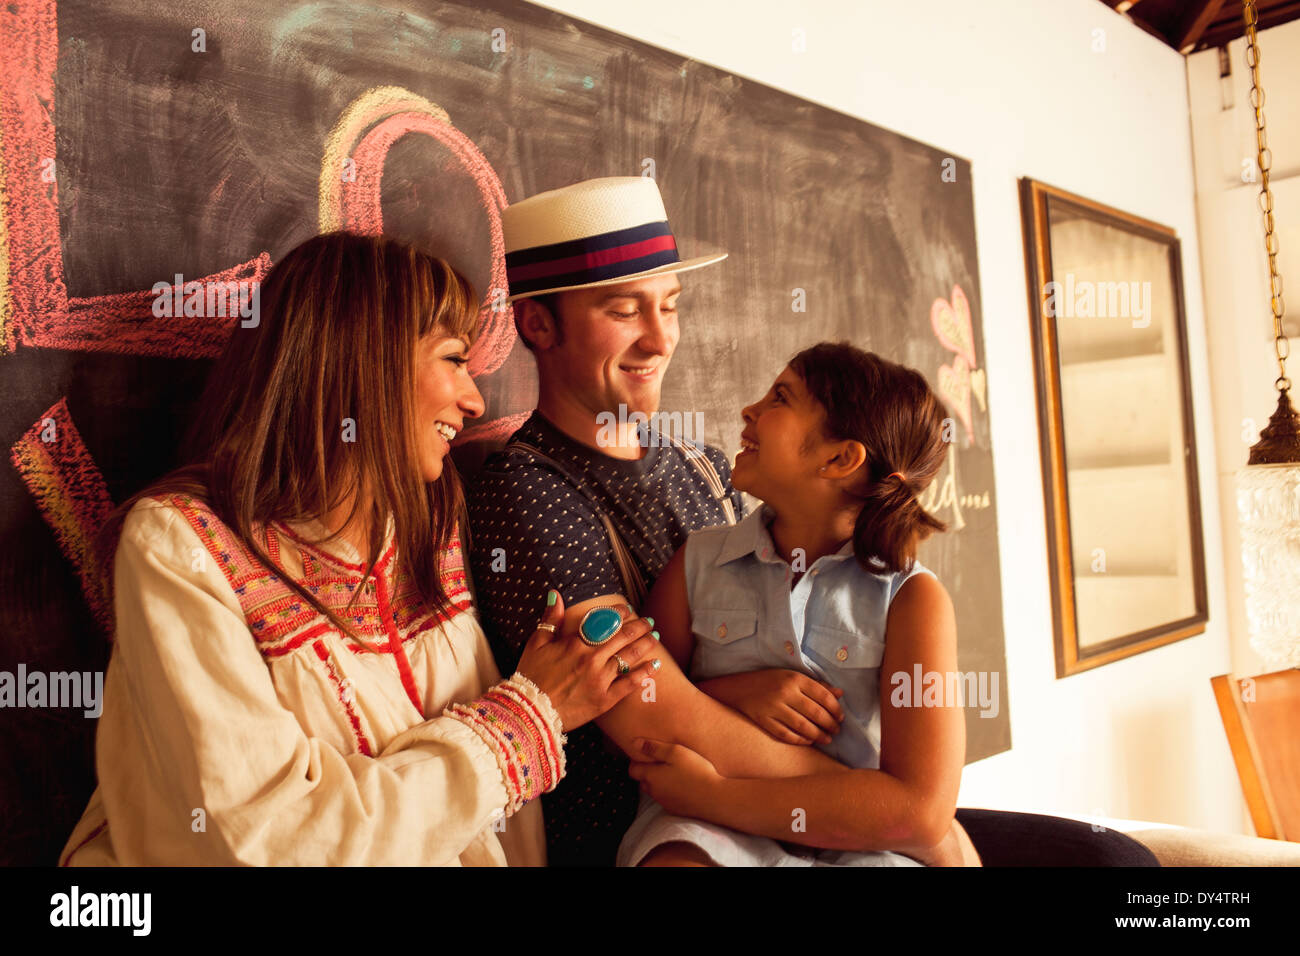 Father, mother and daughter talking and smiling - Stock Image